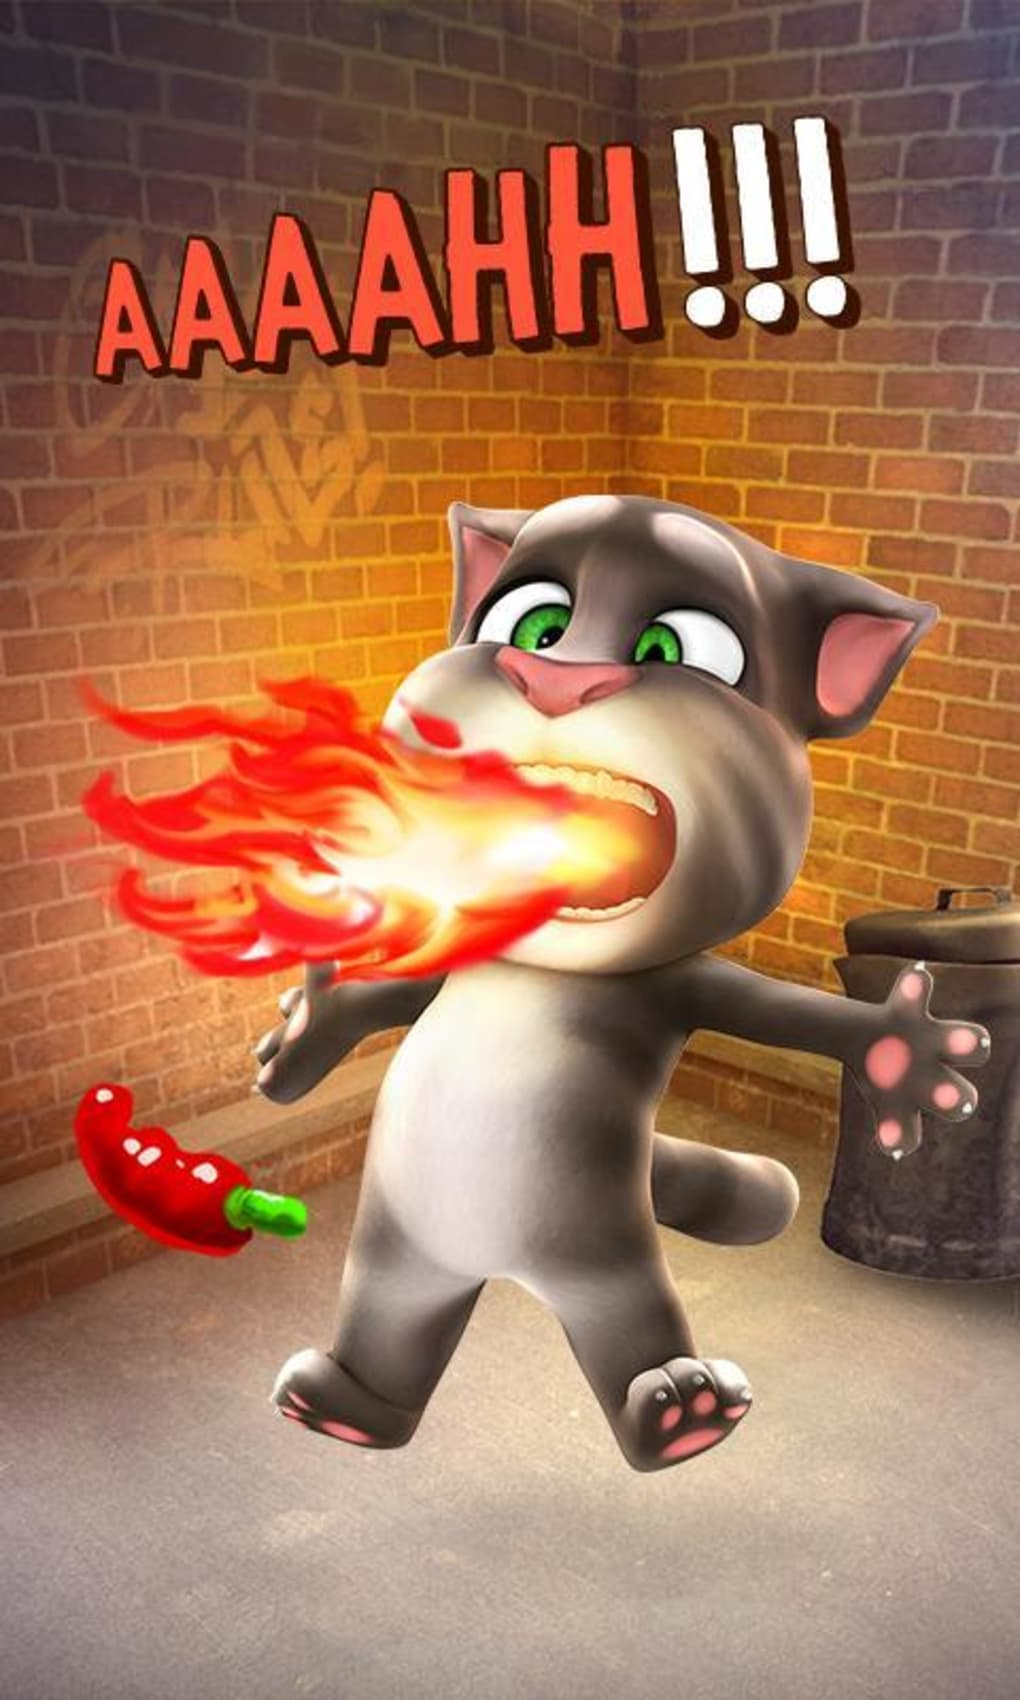 Guide talking tom cat 2 for android apk download.